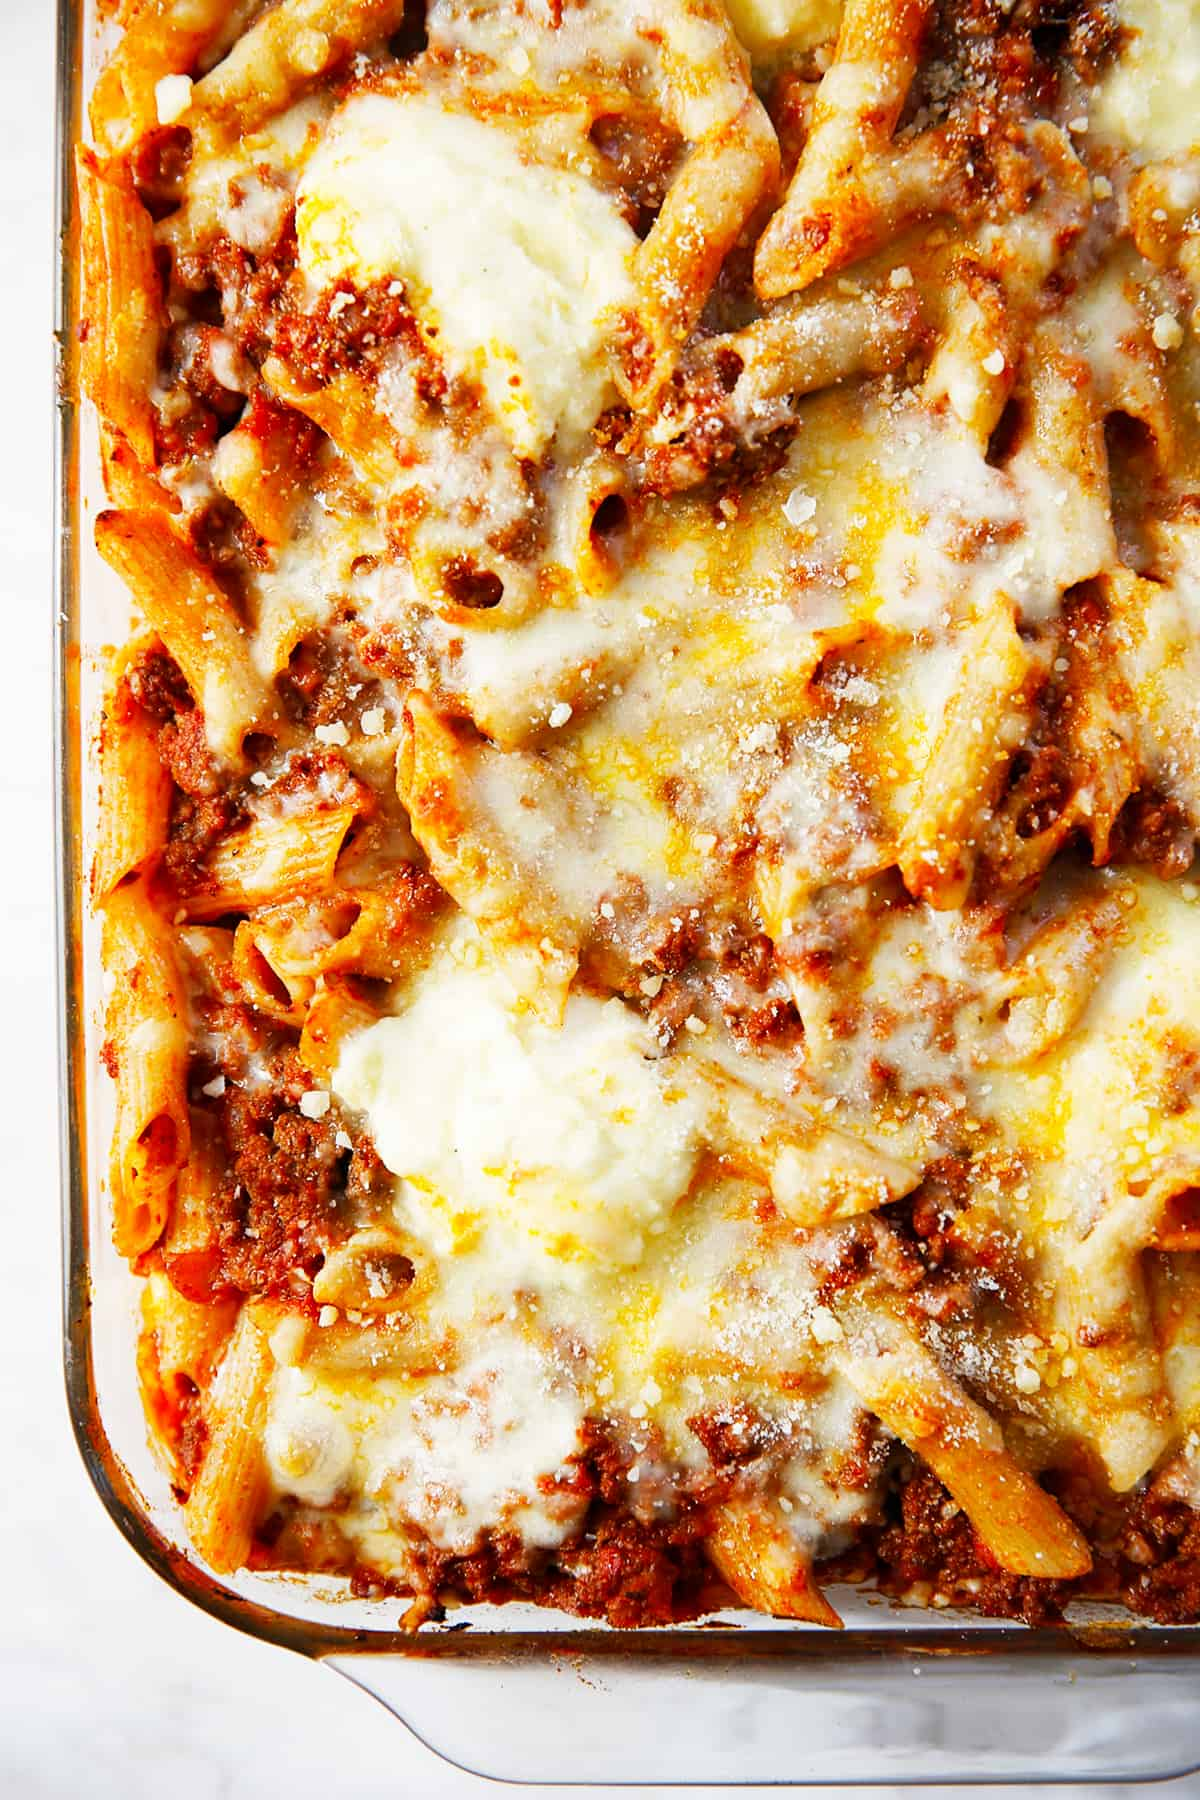 Easy Baked Ziti recipe hot from the oven.